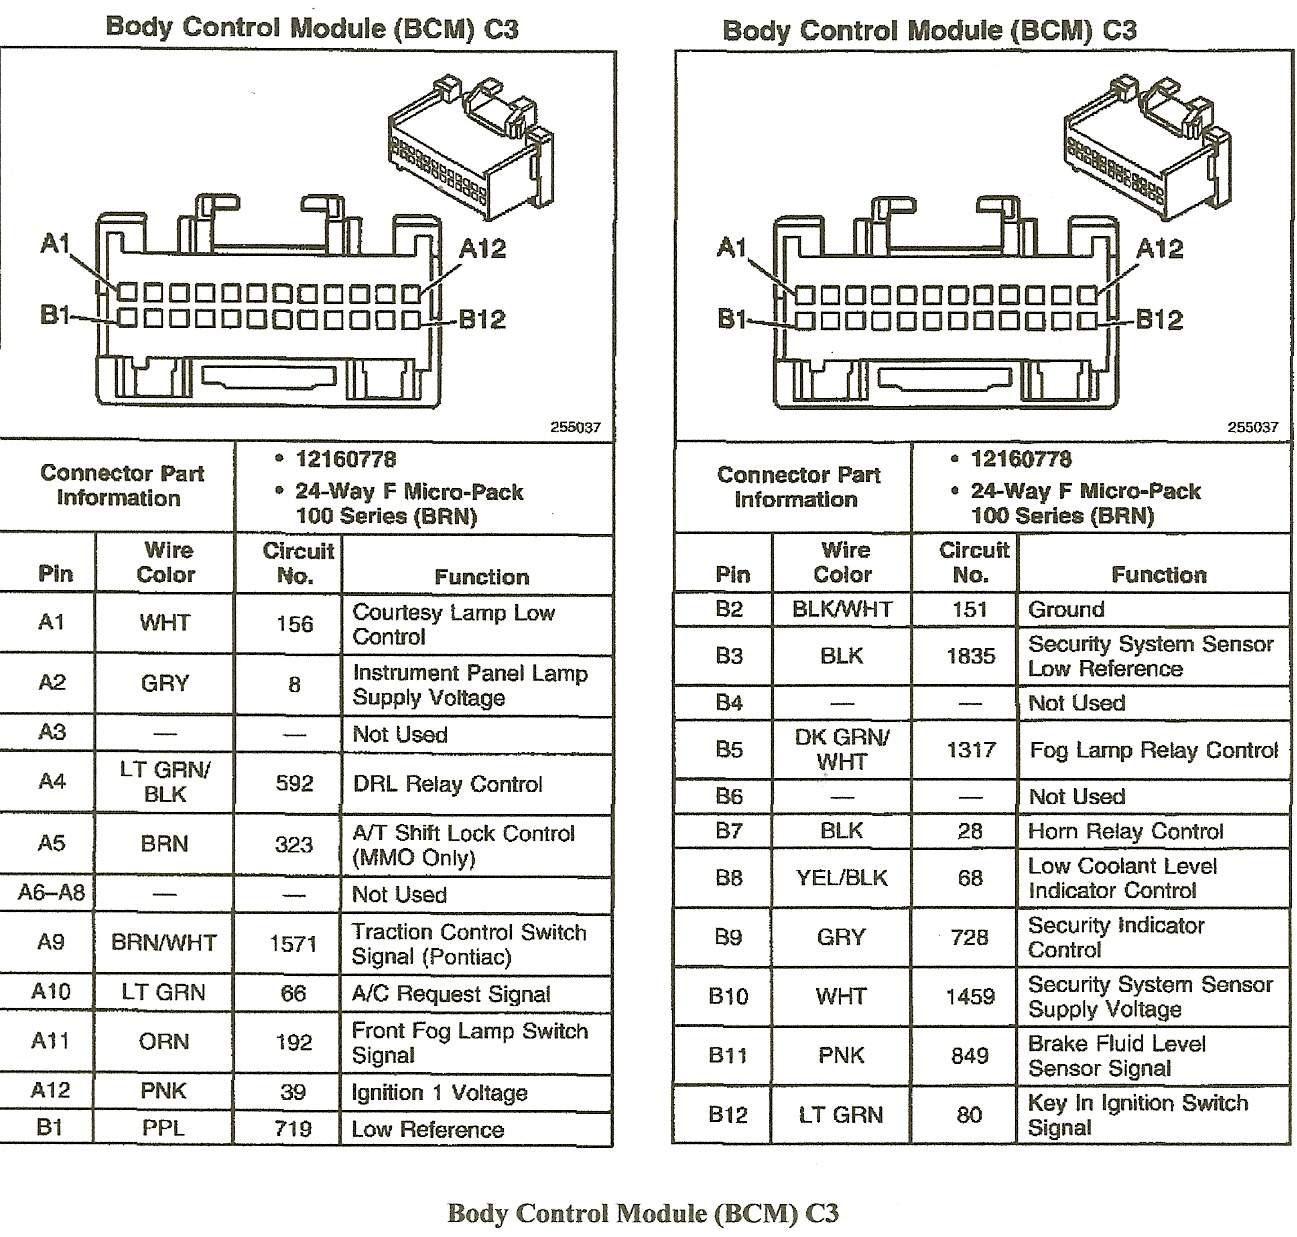 HO_5206] Body Control Module Location Get Free Image About Wiring Diagram  Wiring Diagram   Bcm Wiring Diagram 2014      Hicag Tool Mohammedshrine Librar Wiring 101